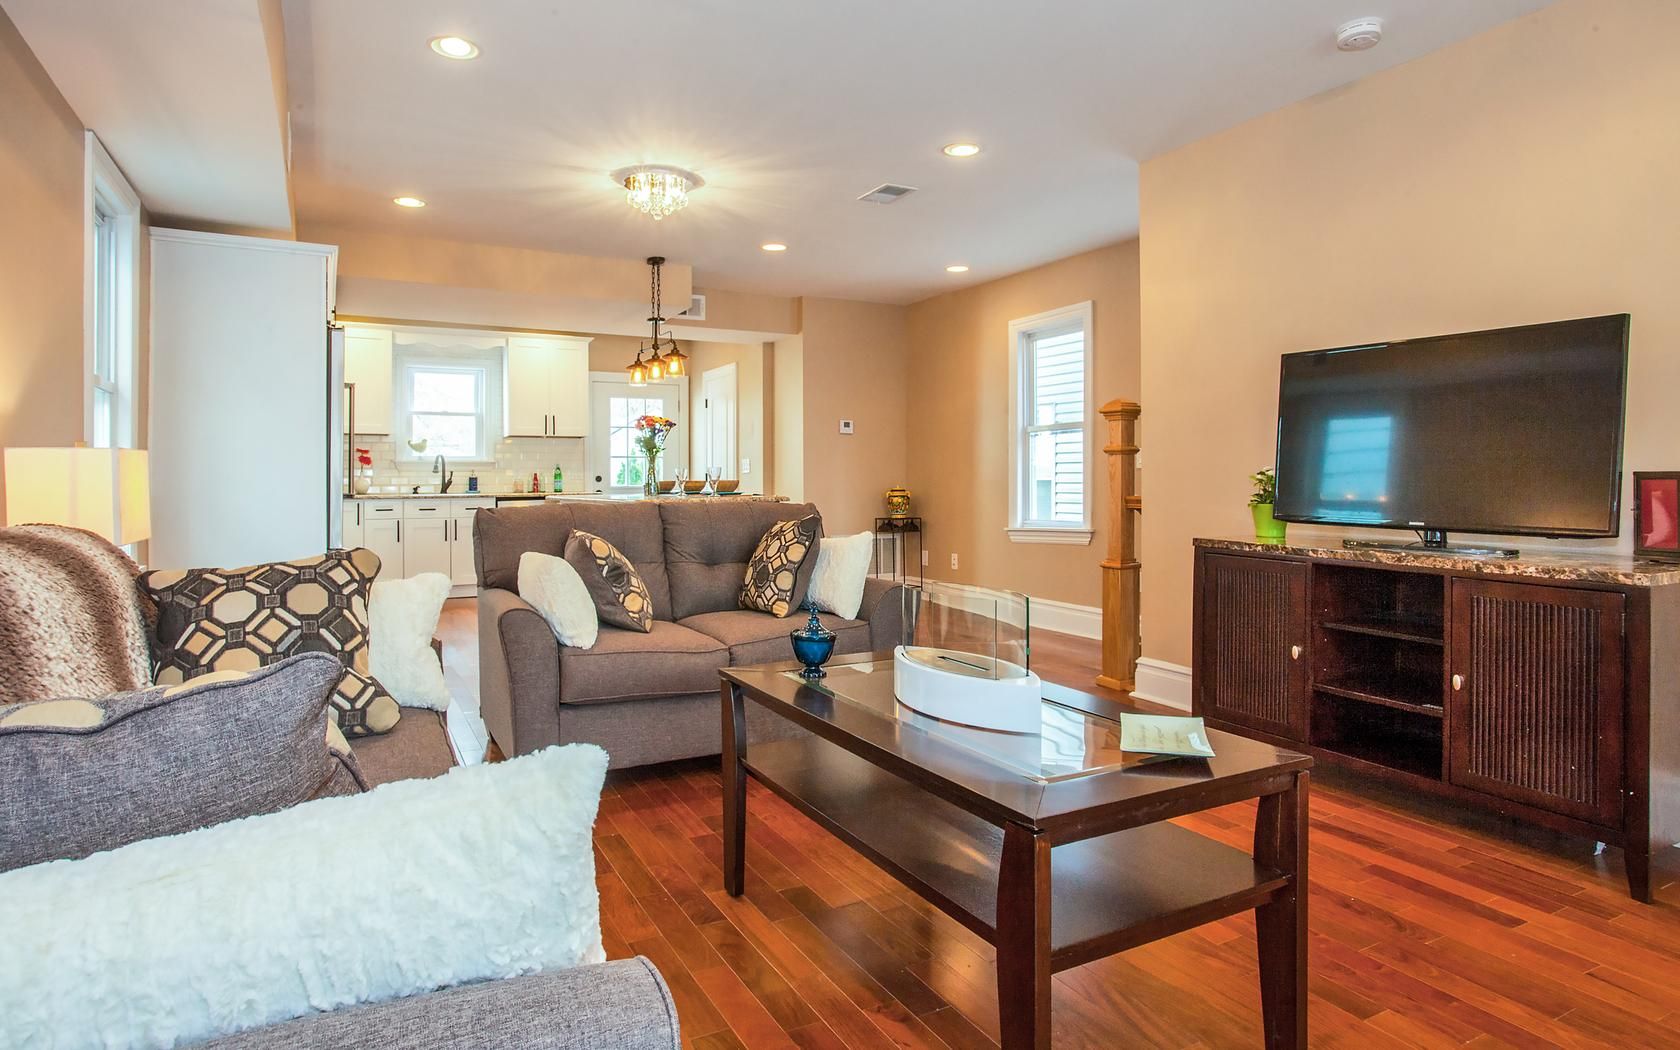 Single Family Home for Sale at Gorgeous newly renovated Three bedroom, Three and a half bath!! 31 West 41st Street Bayonne, New Jersey 07002 United States